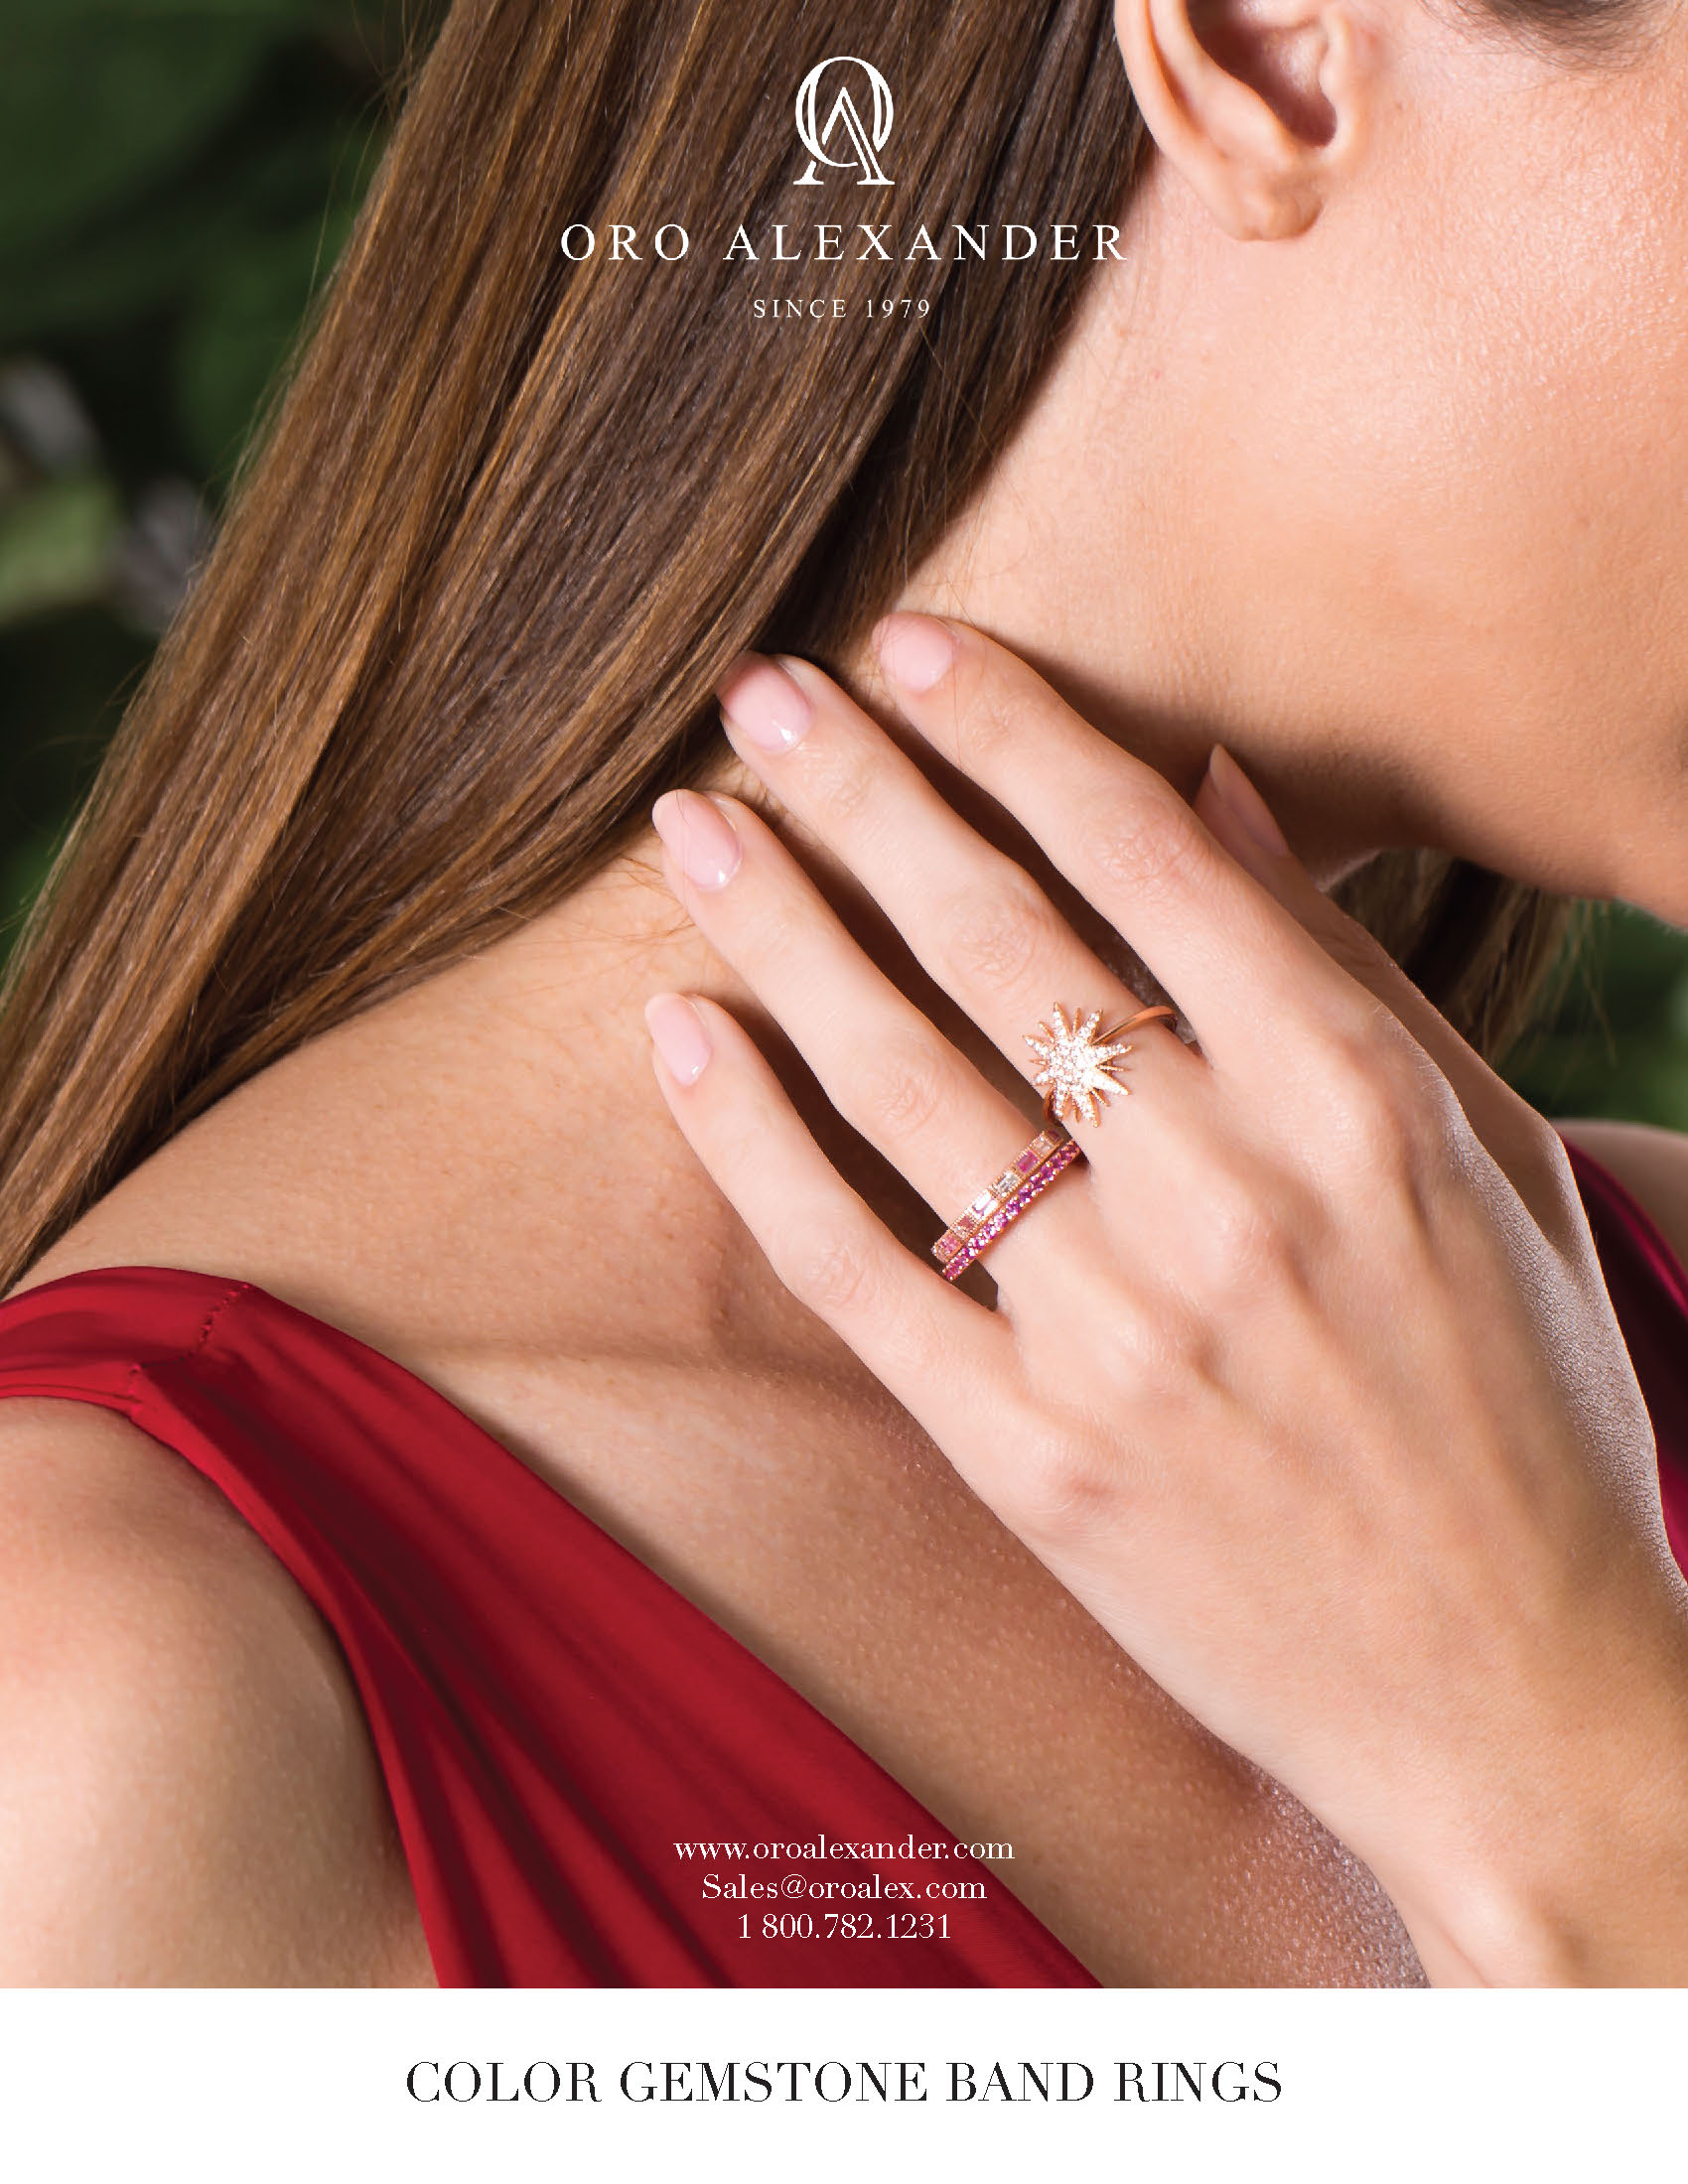 COLOR GEMSTONE BAND RINGS-HQ_Page_1.jpg